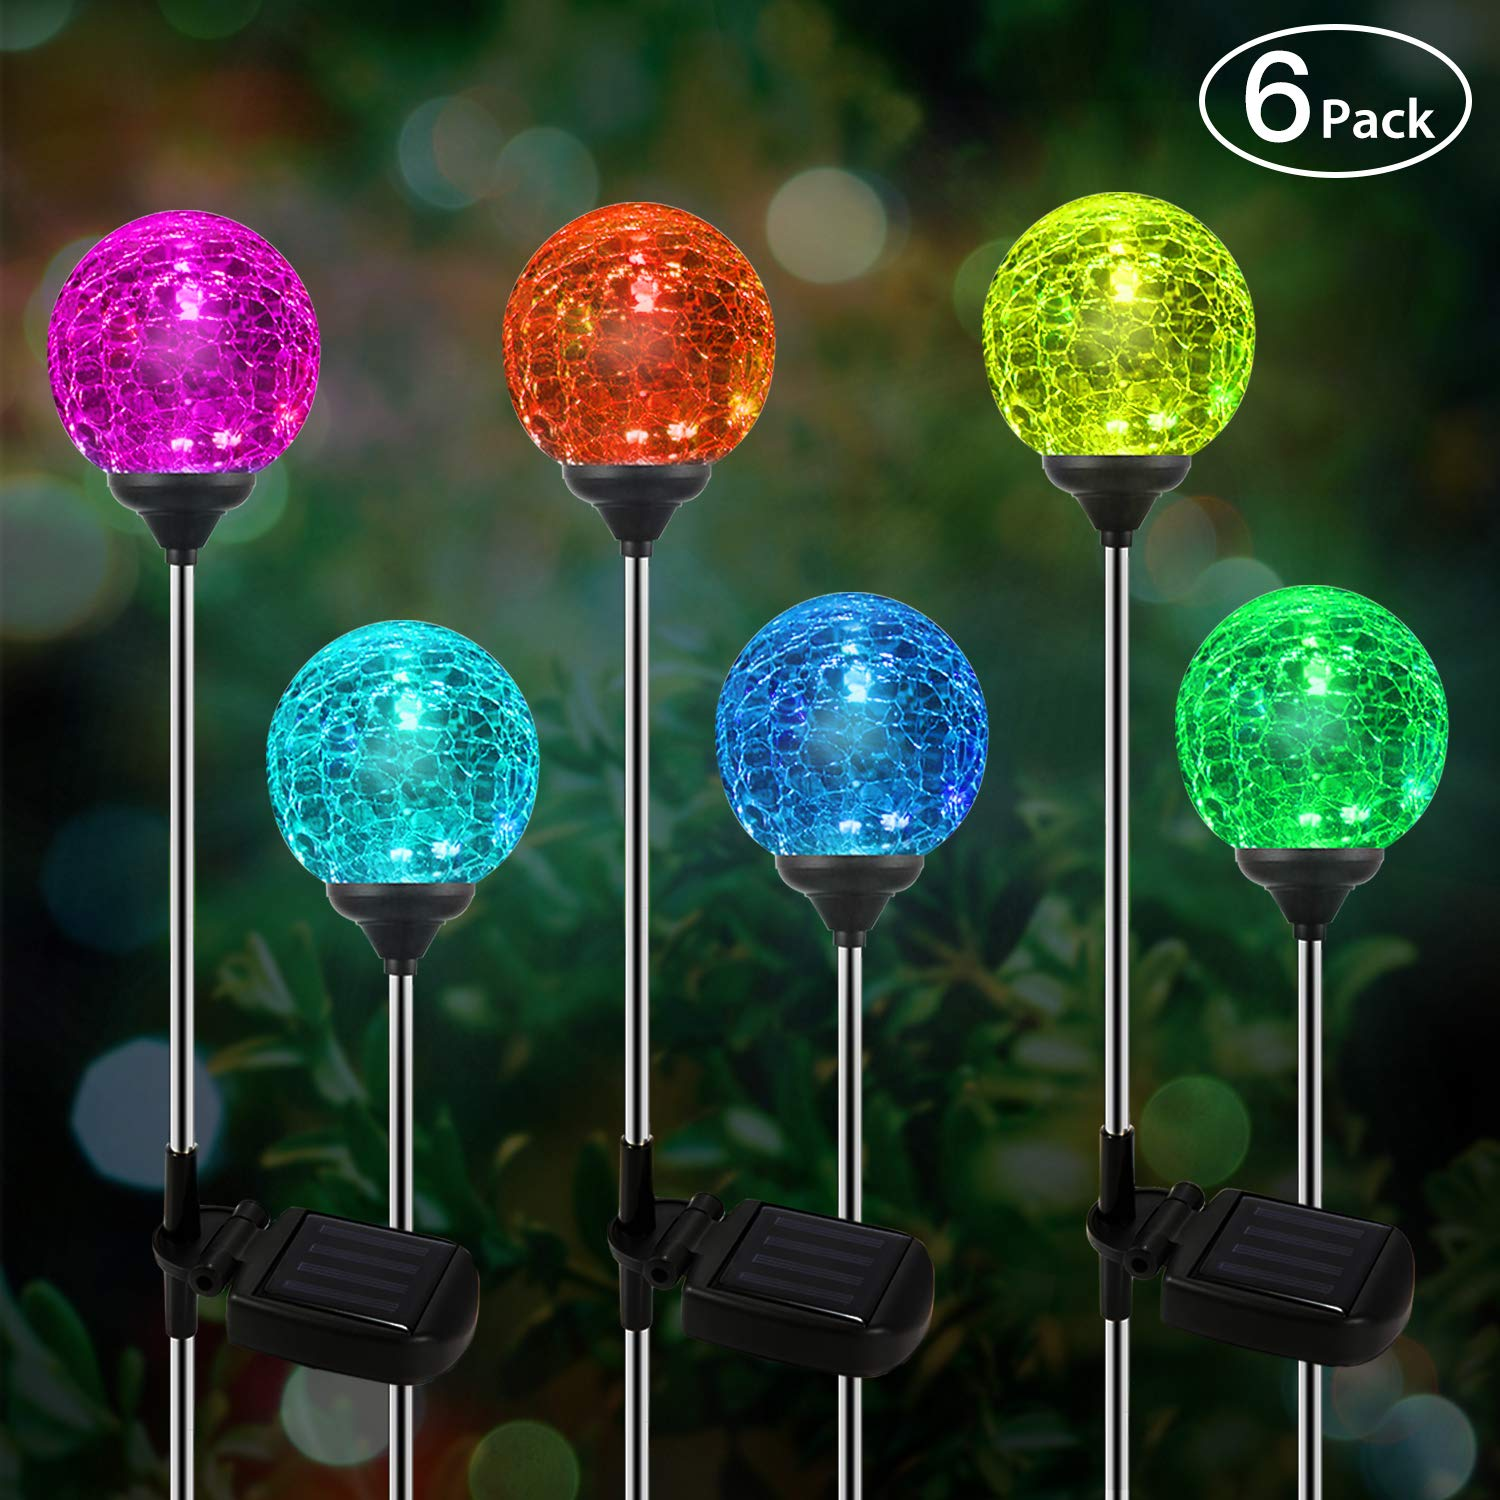 Solar Globe Lights, OxyLED 6 Pack Crystal Glass LED Light/Solar Stake Light, Color-Changing Outdoor Landscape Garden Light Decoration, Halloween Christmas Garden Decor by OxyLED